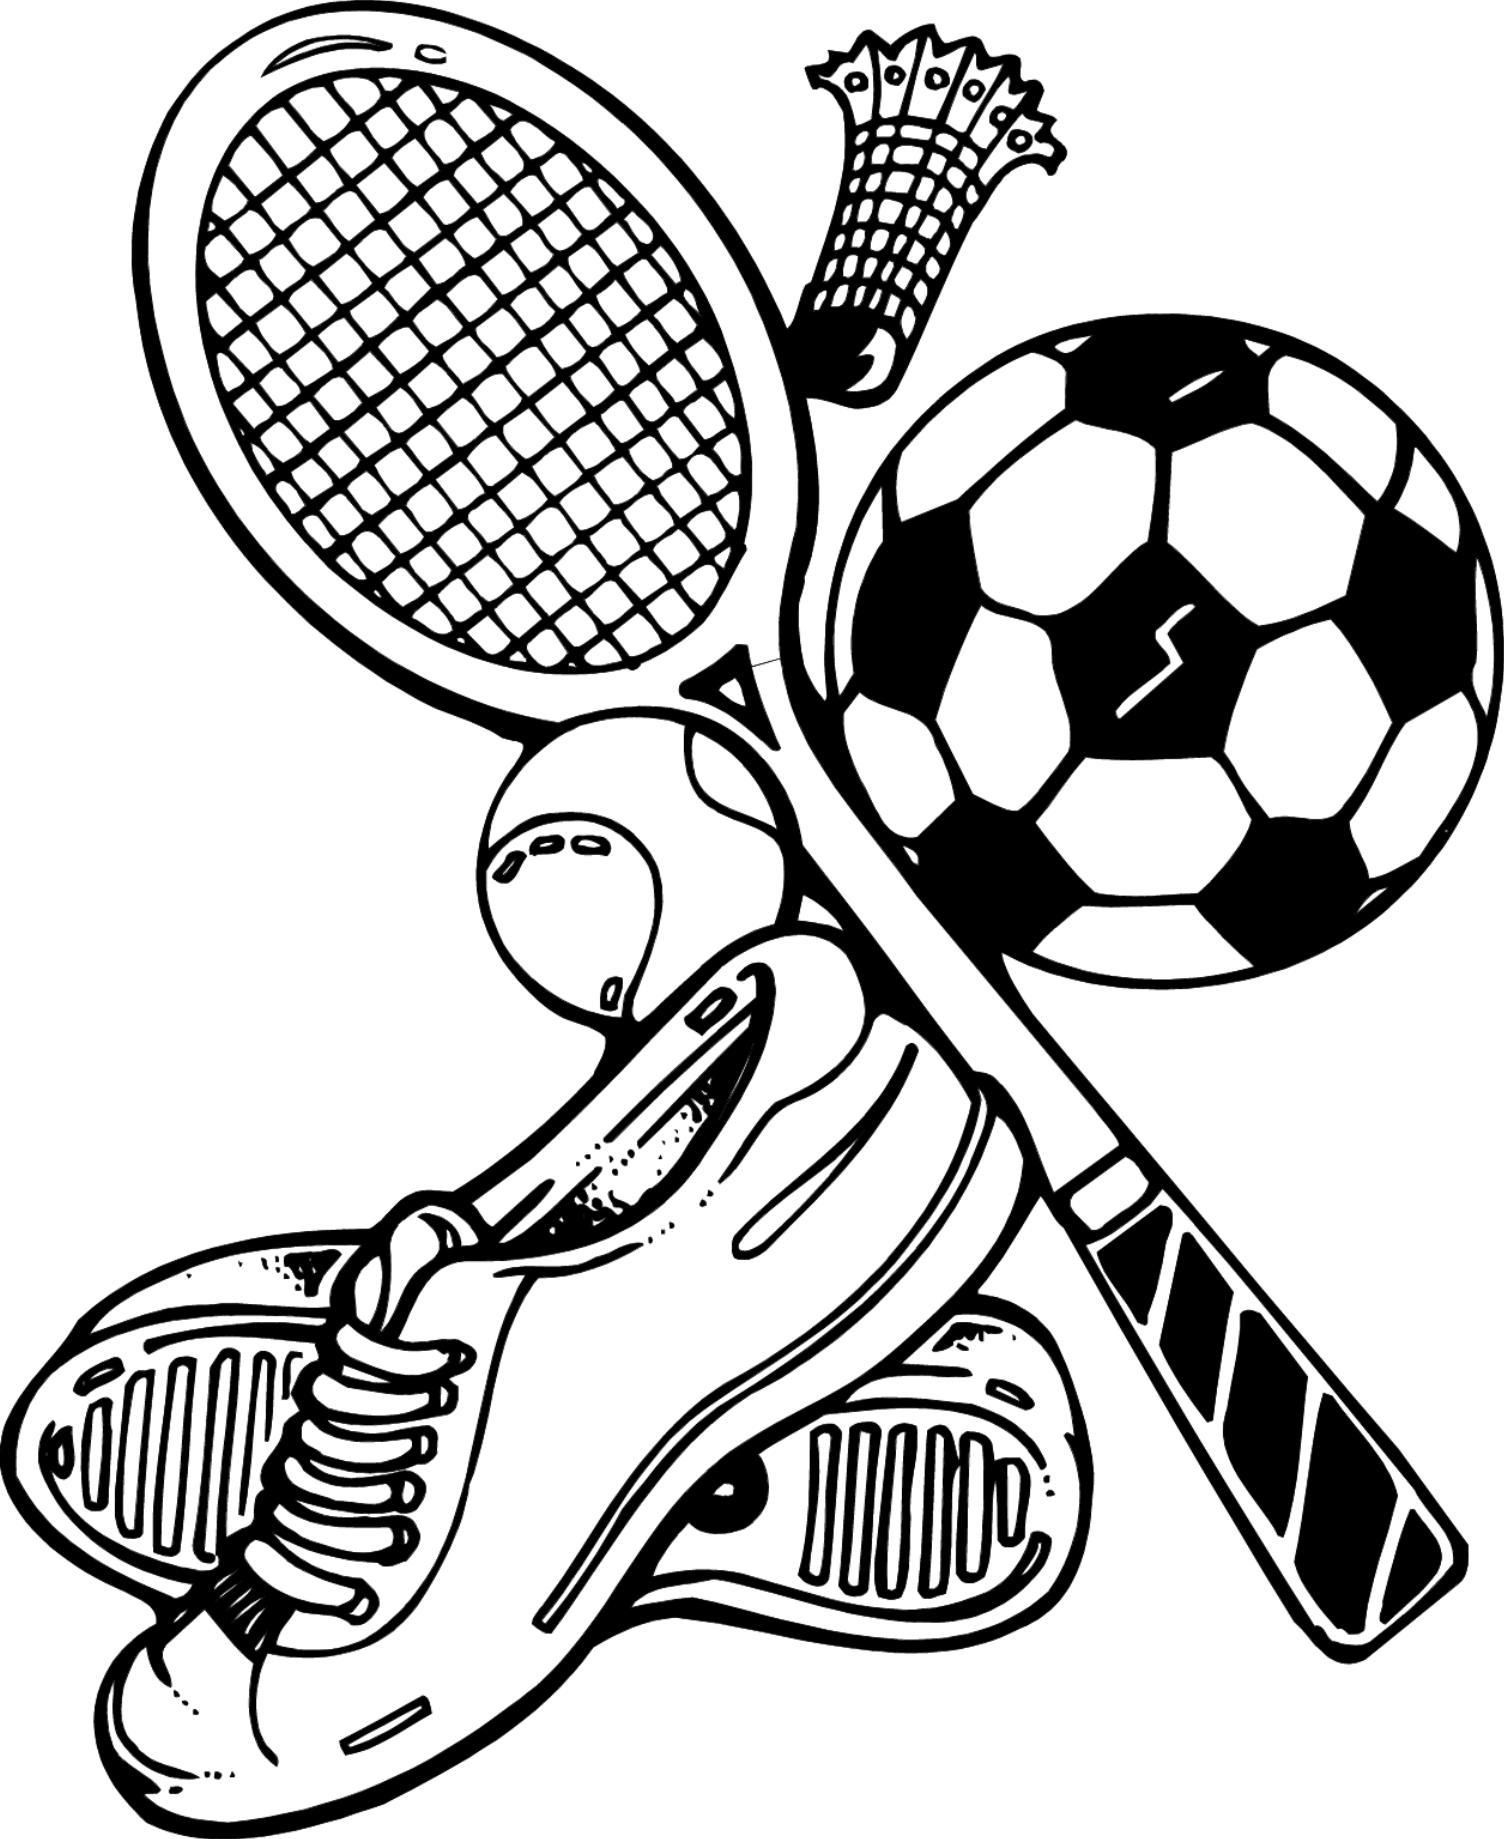 First Pages Tools And Sports Coloring Page In 2020 Sports